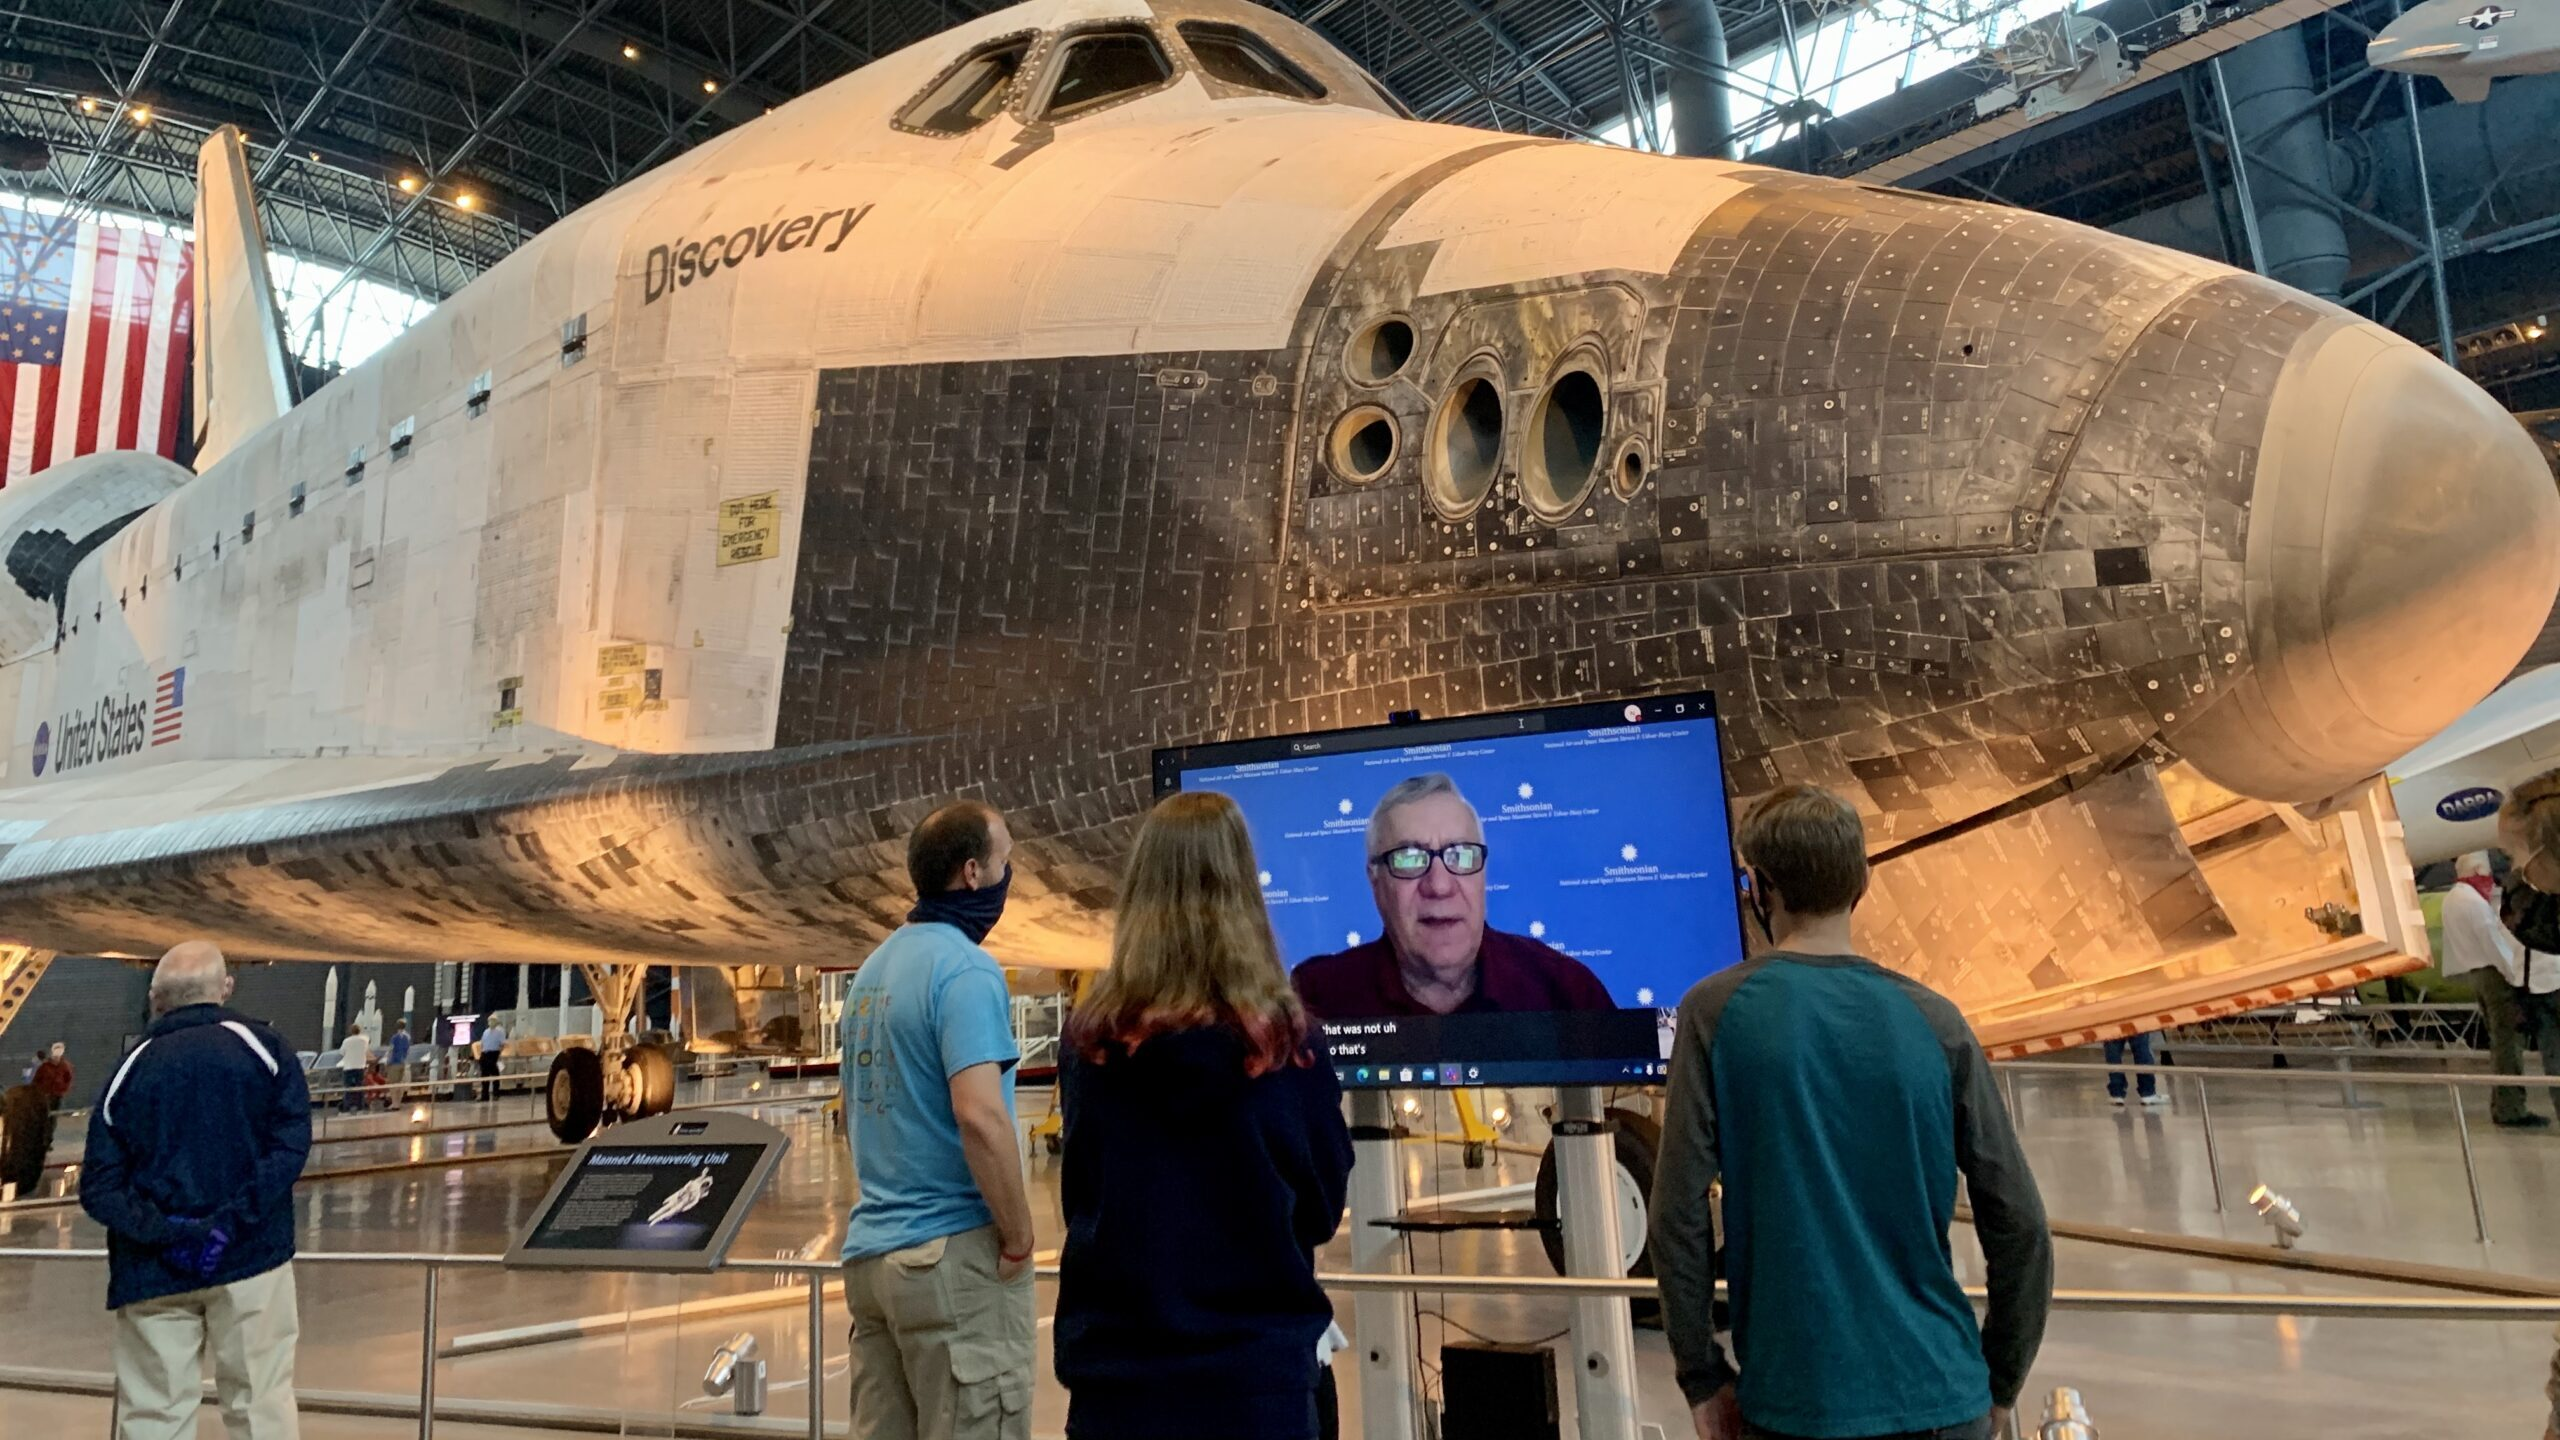 A group of people stand in front of a video screen with a feed of a volunteer speaking, with an artifact plane visible in the background